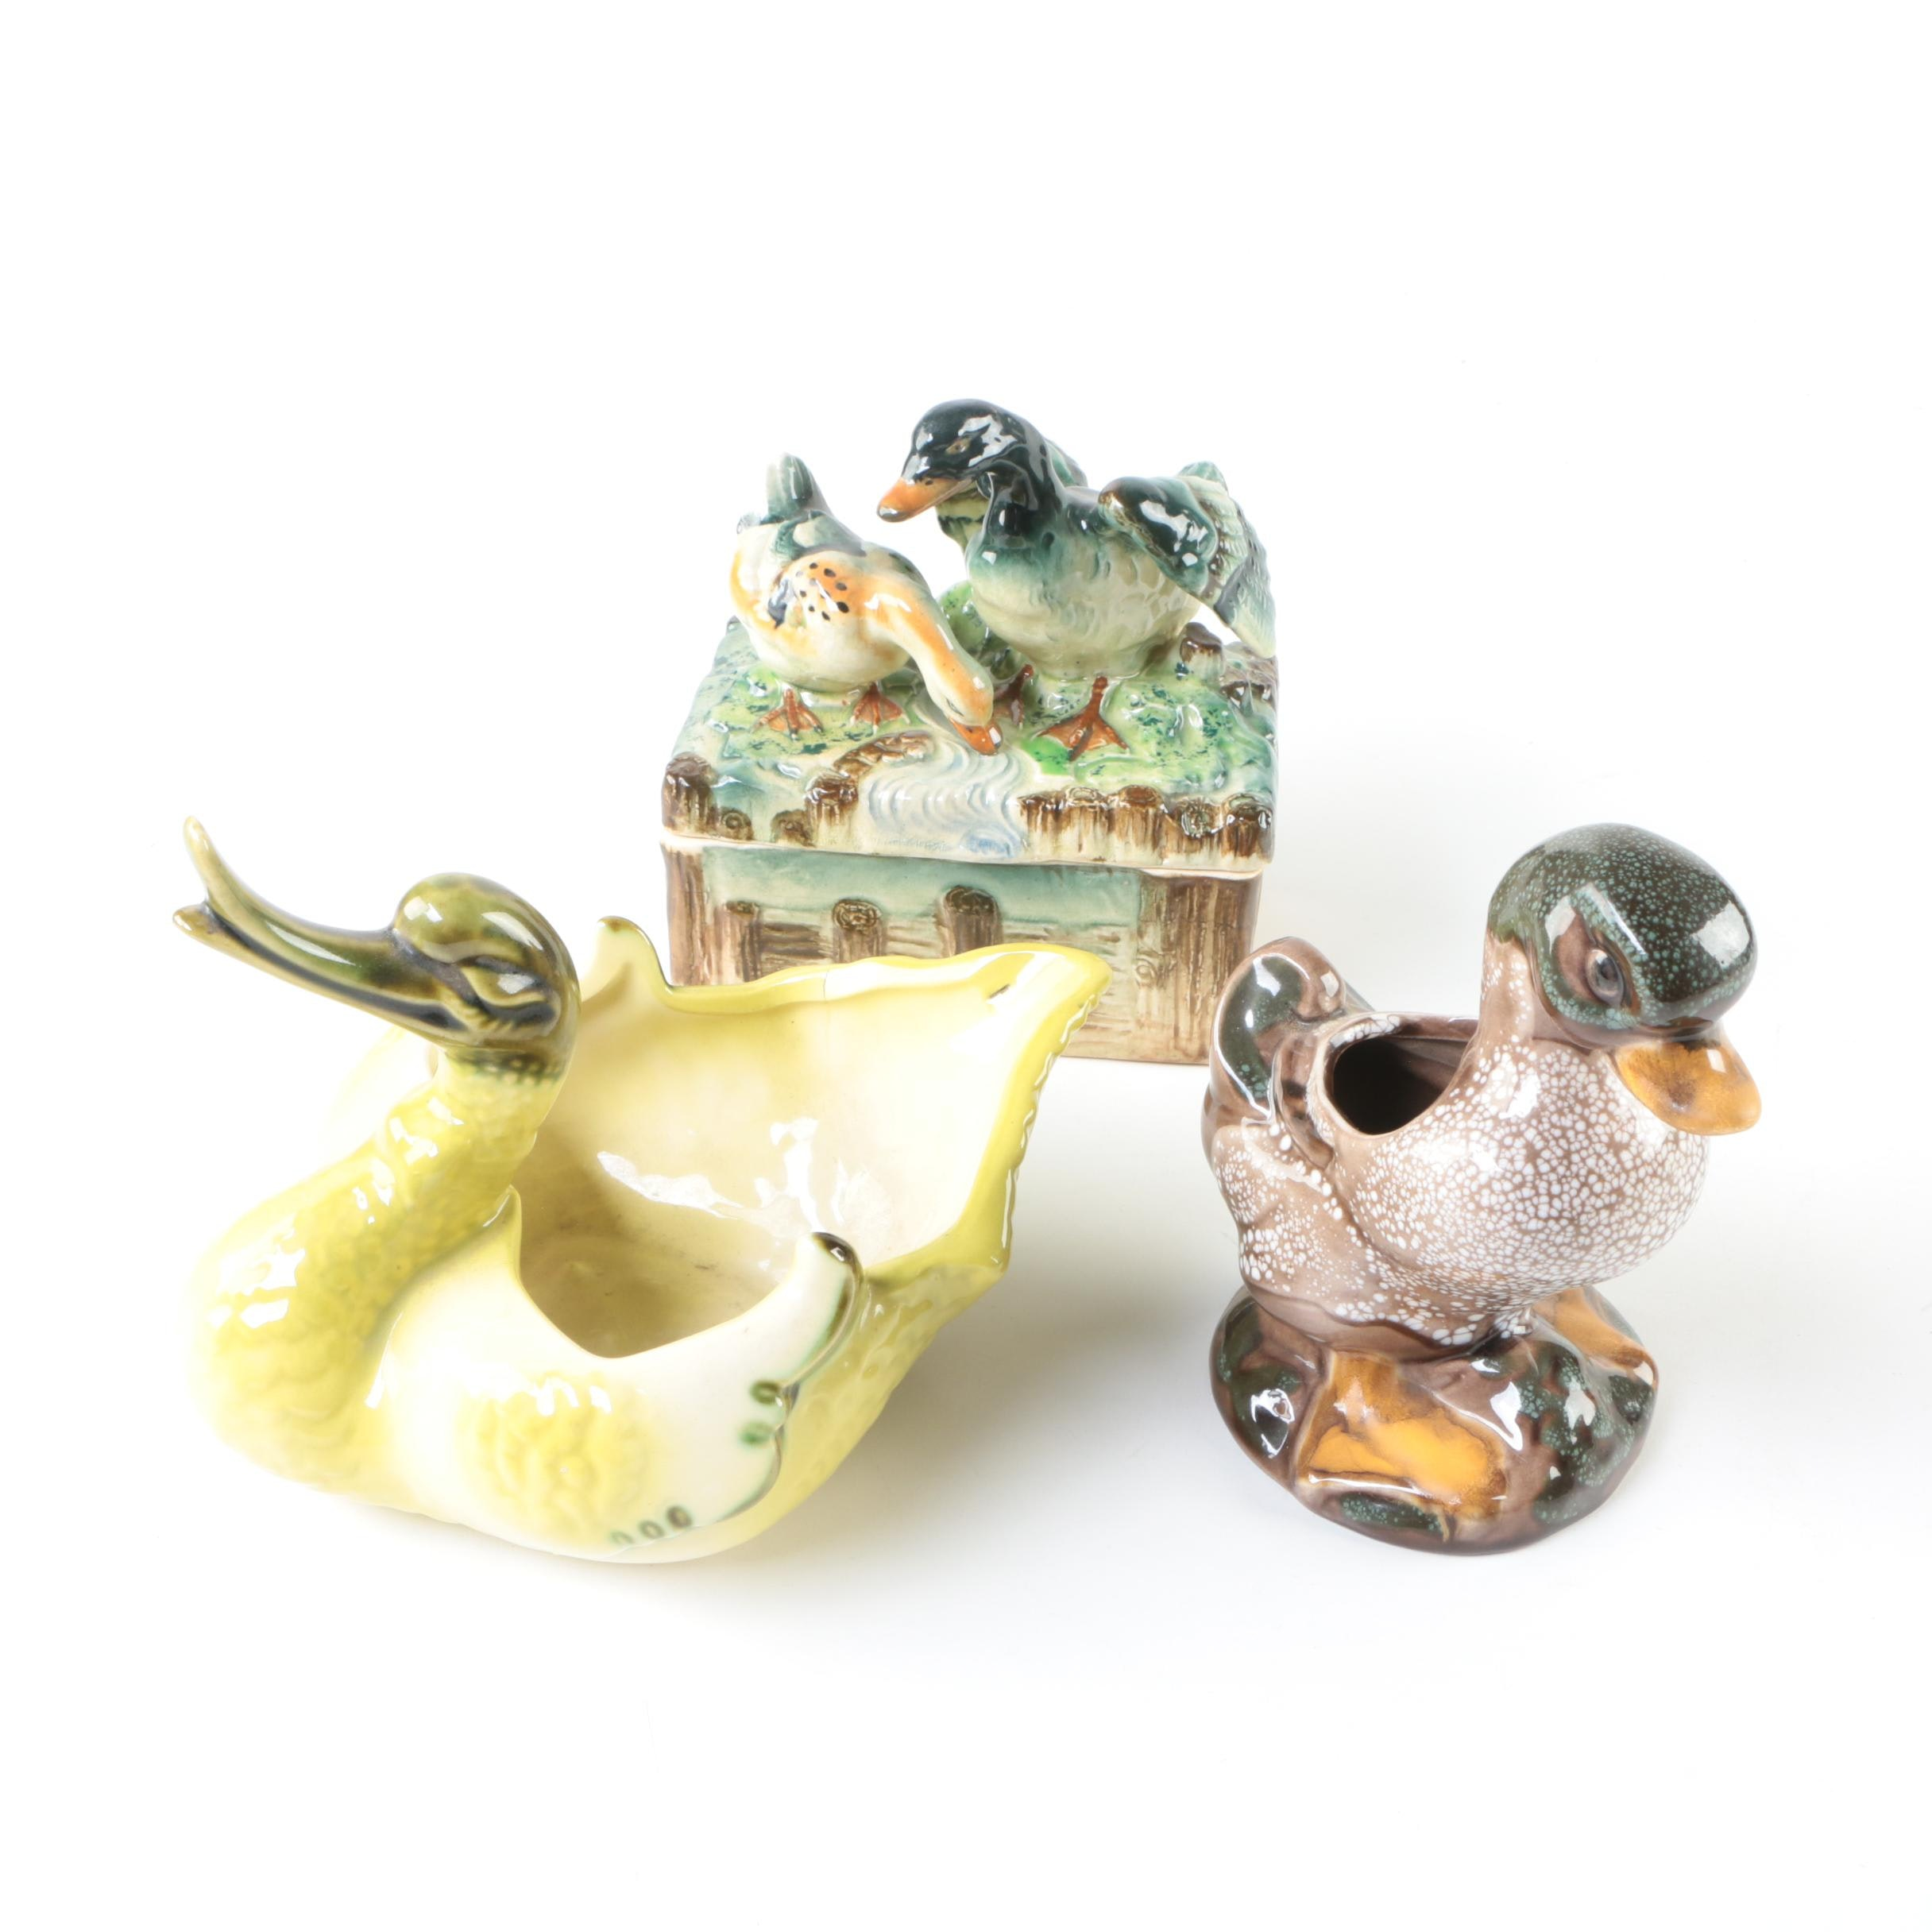 Vintage Ceramic Duck Themed Planters and Trinket Box